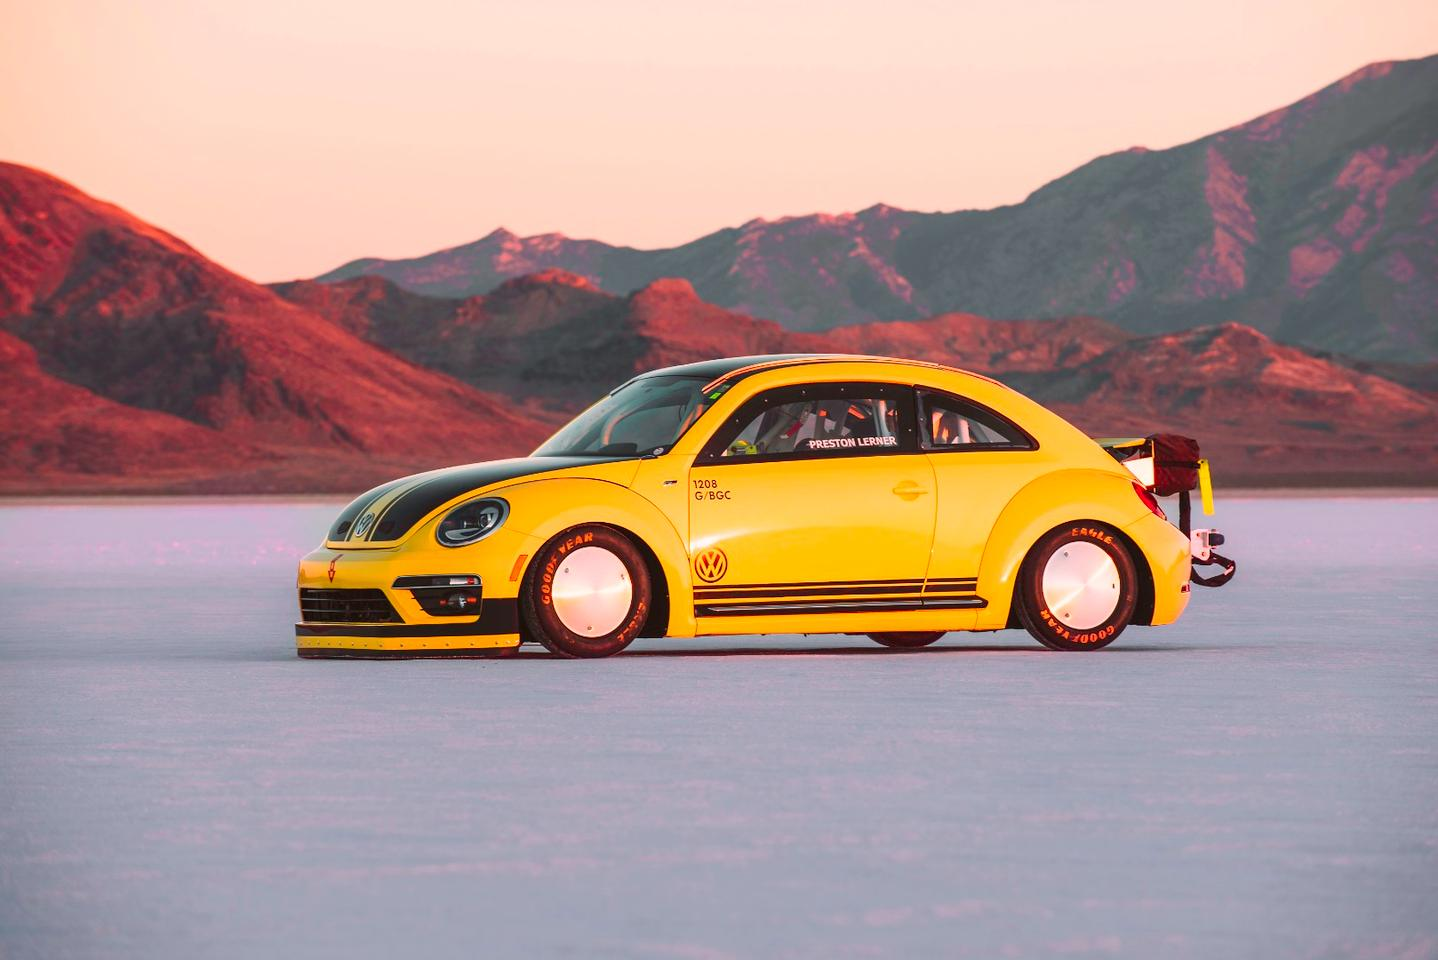 Areworked engine gives this VWBeetle 543 hp and 421 lb-ft